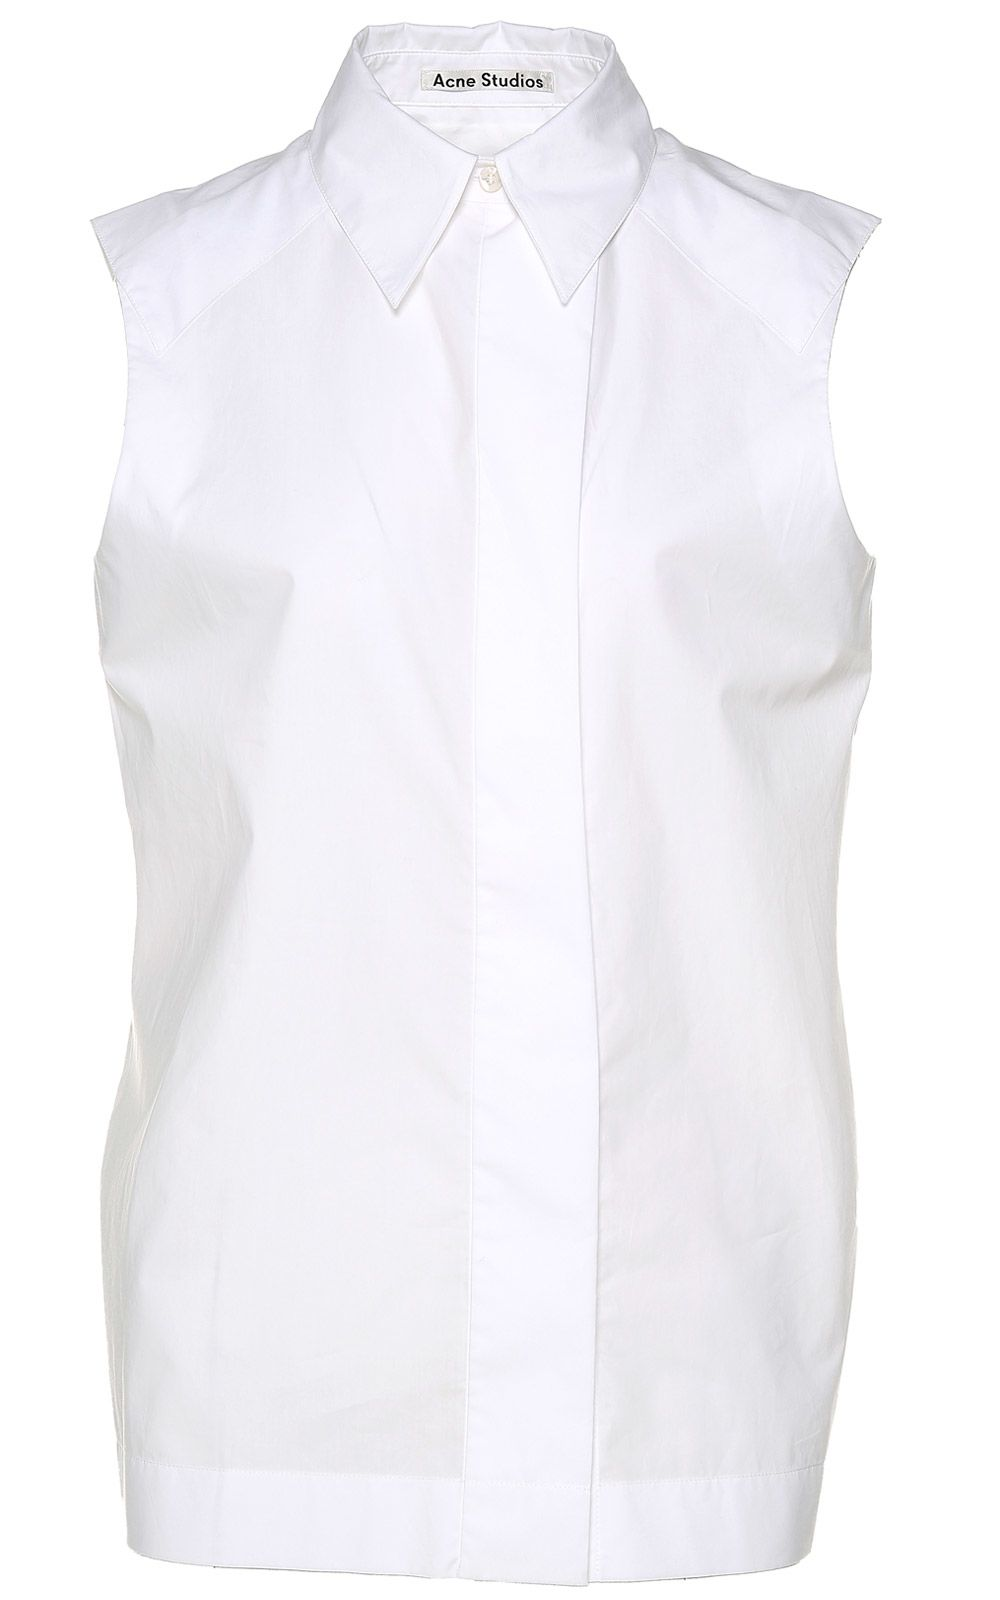 Acne Studios Luchia Pop Cotton-poplin Shirt